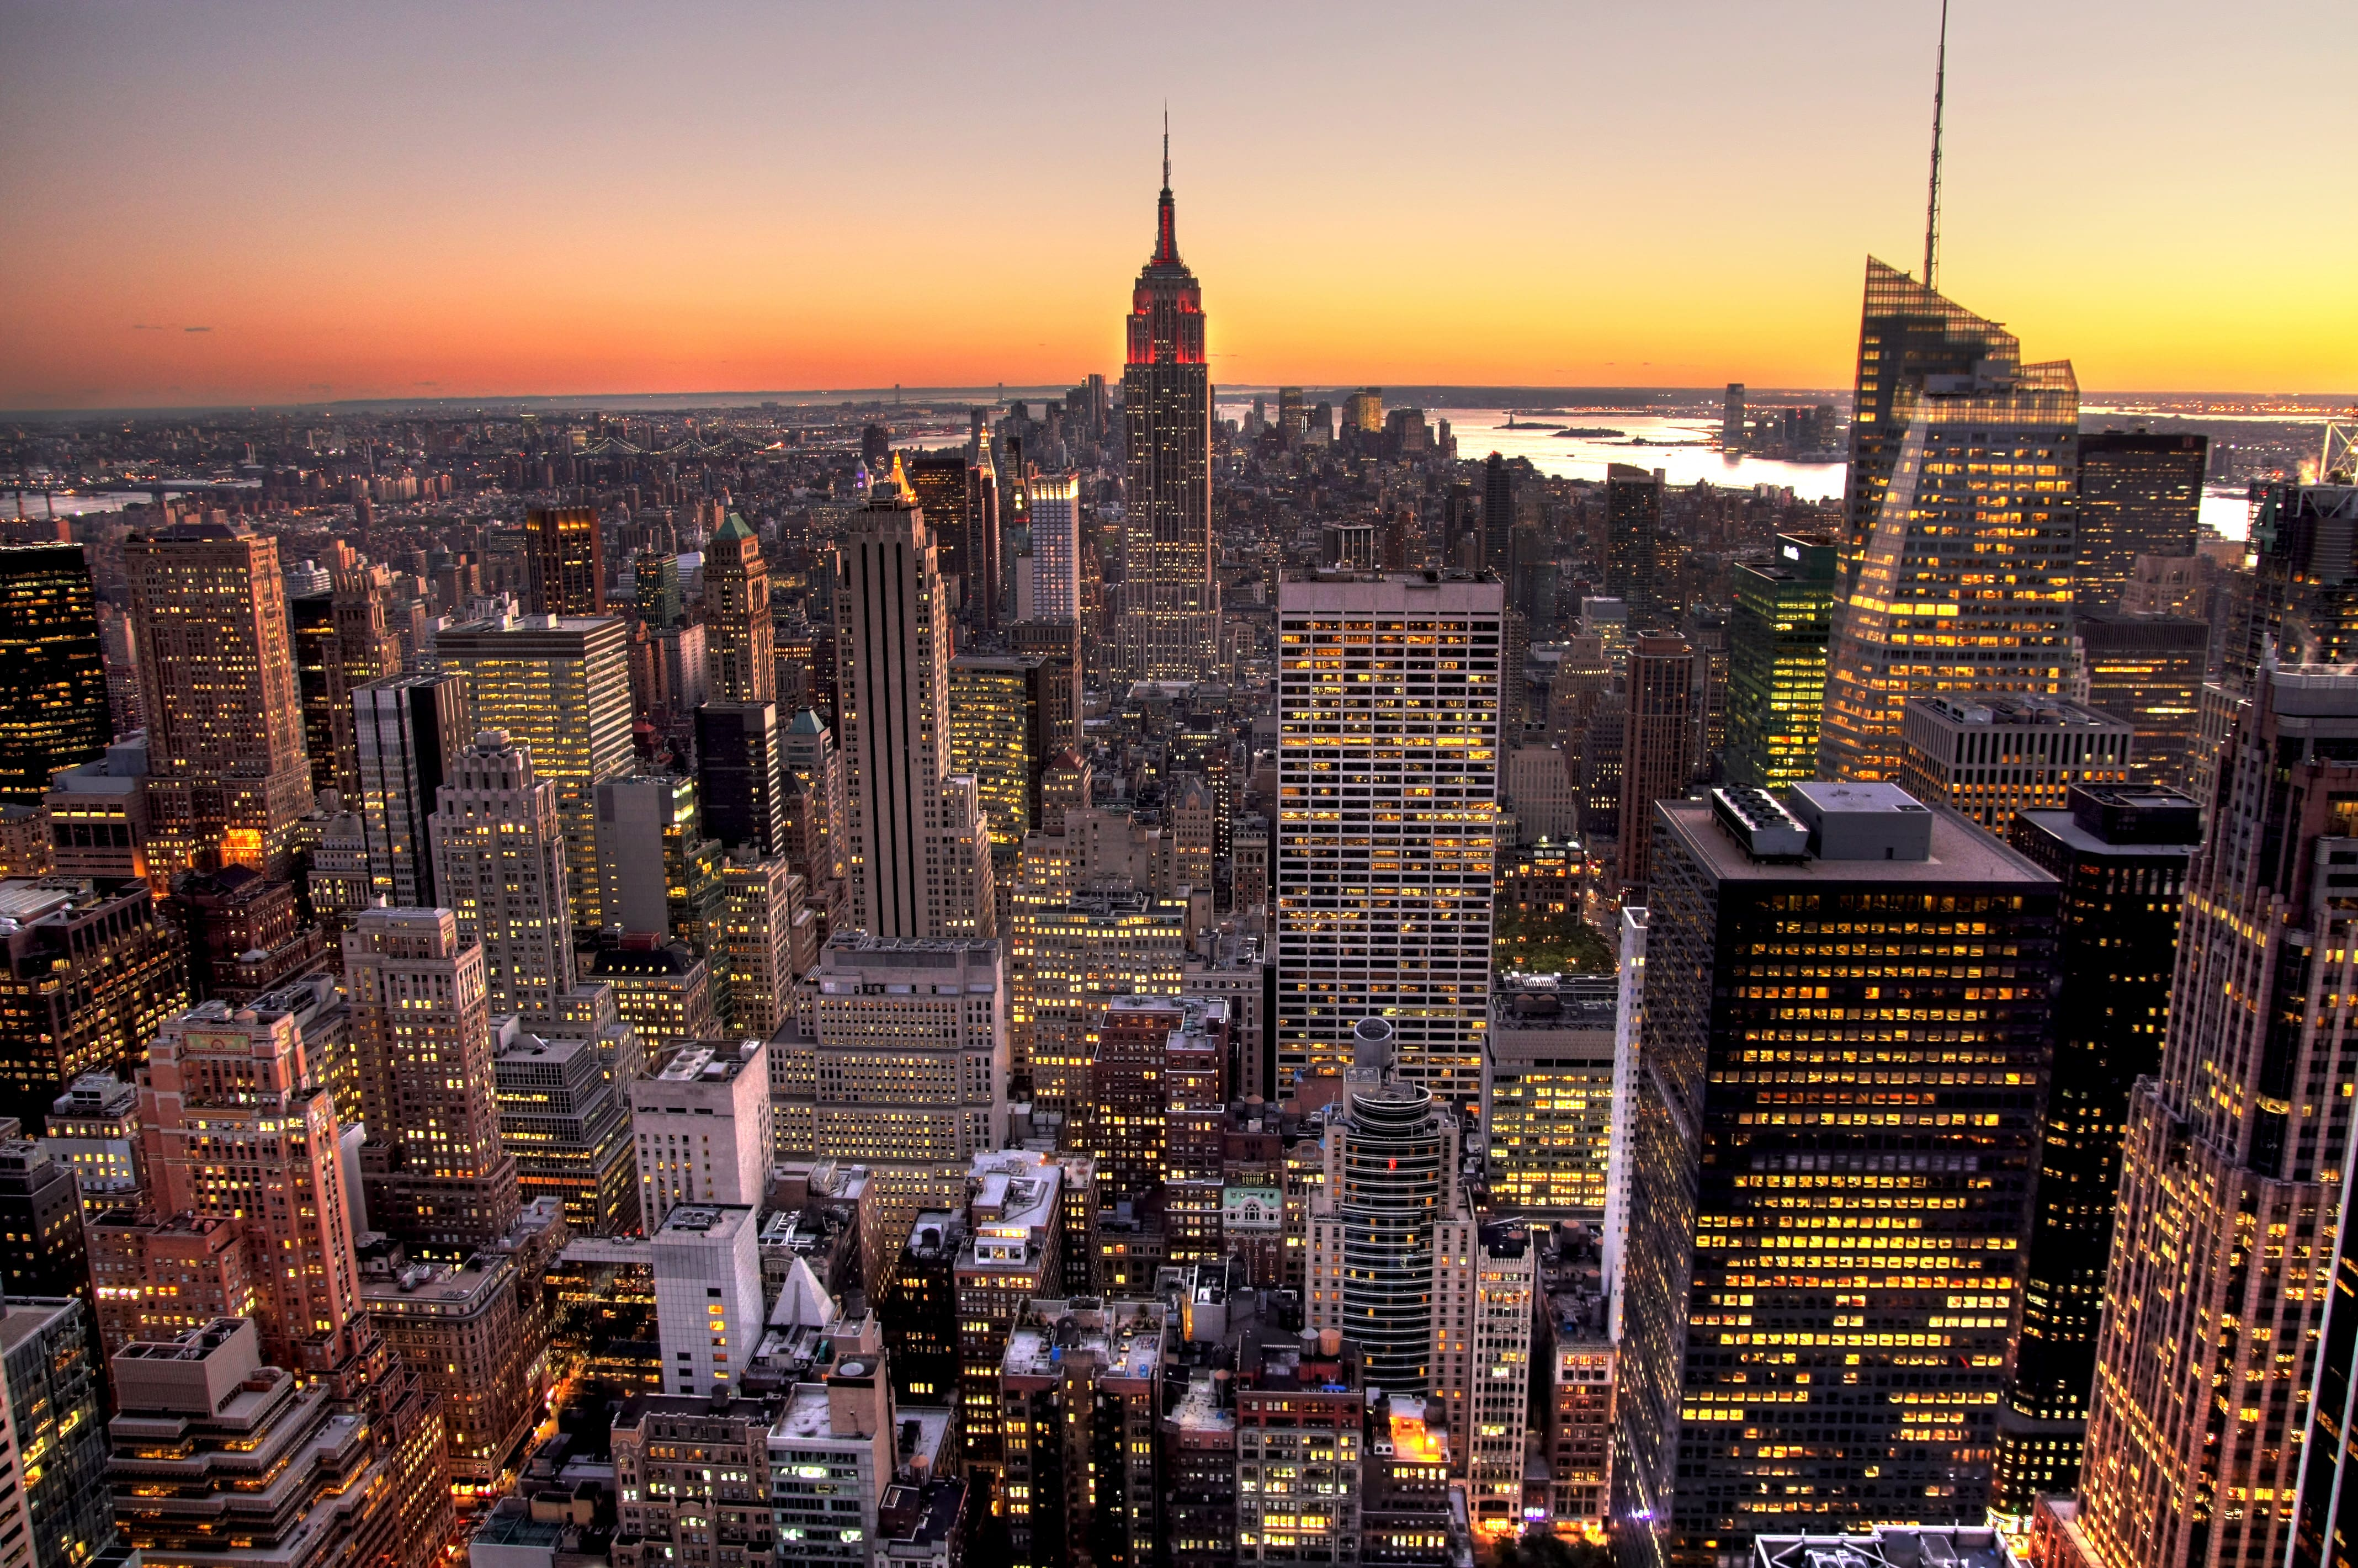 The Top of the Rock is a great place to visit in New York City for stunning views